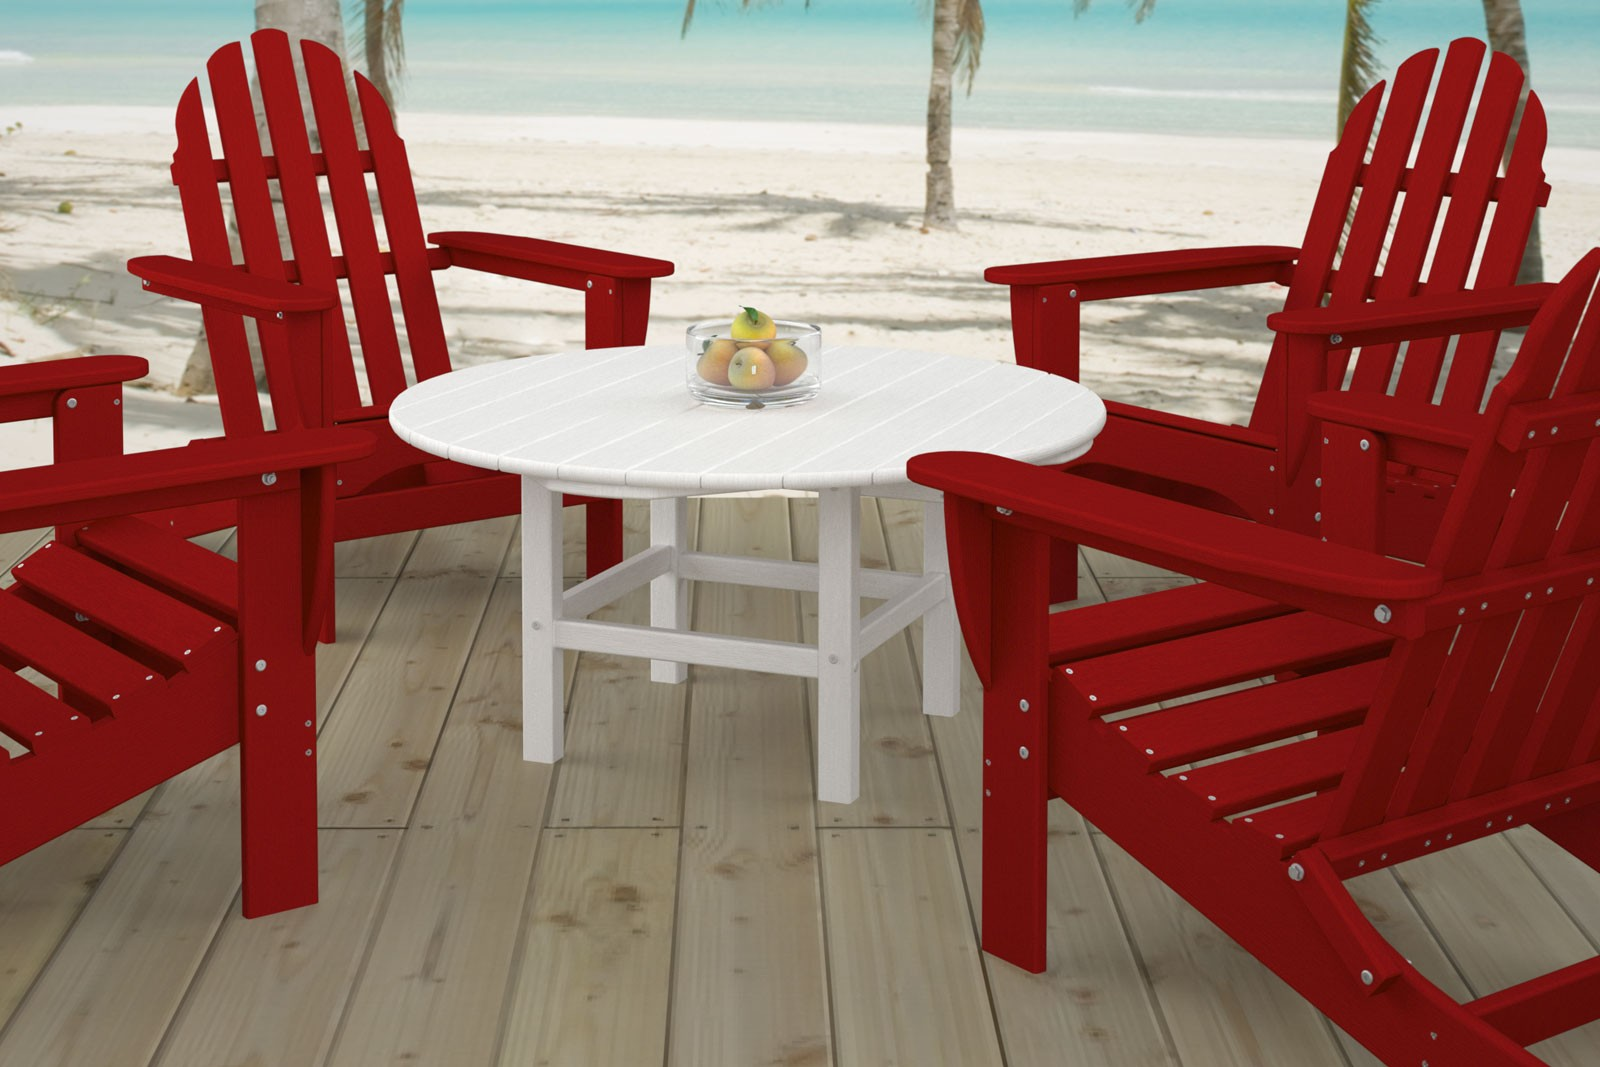 Green Park Store Patio Furniture Gift Ideas For The Holidays